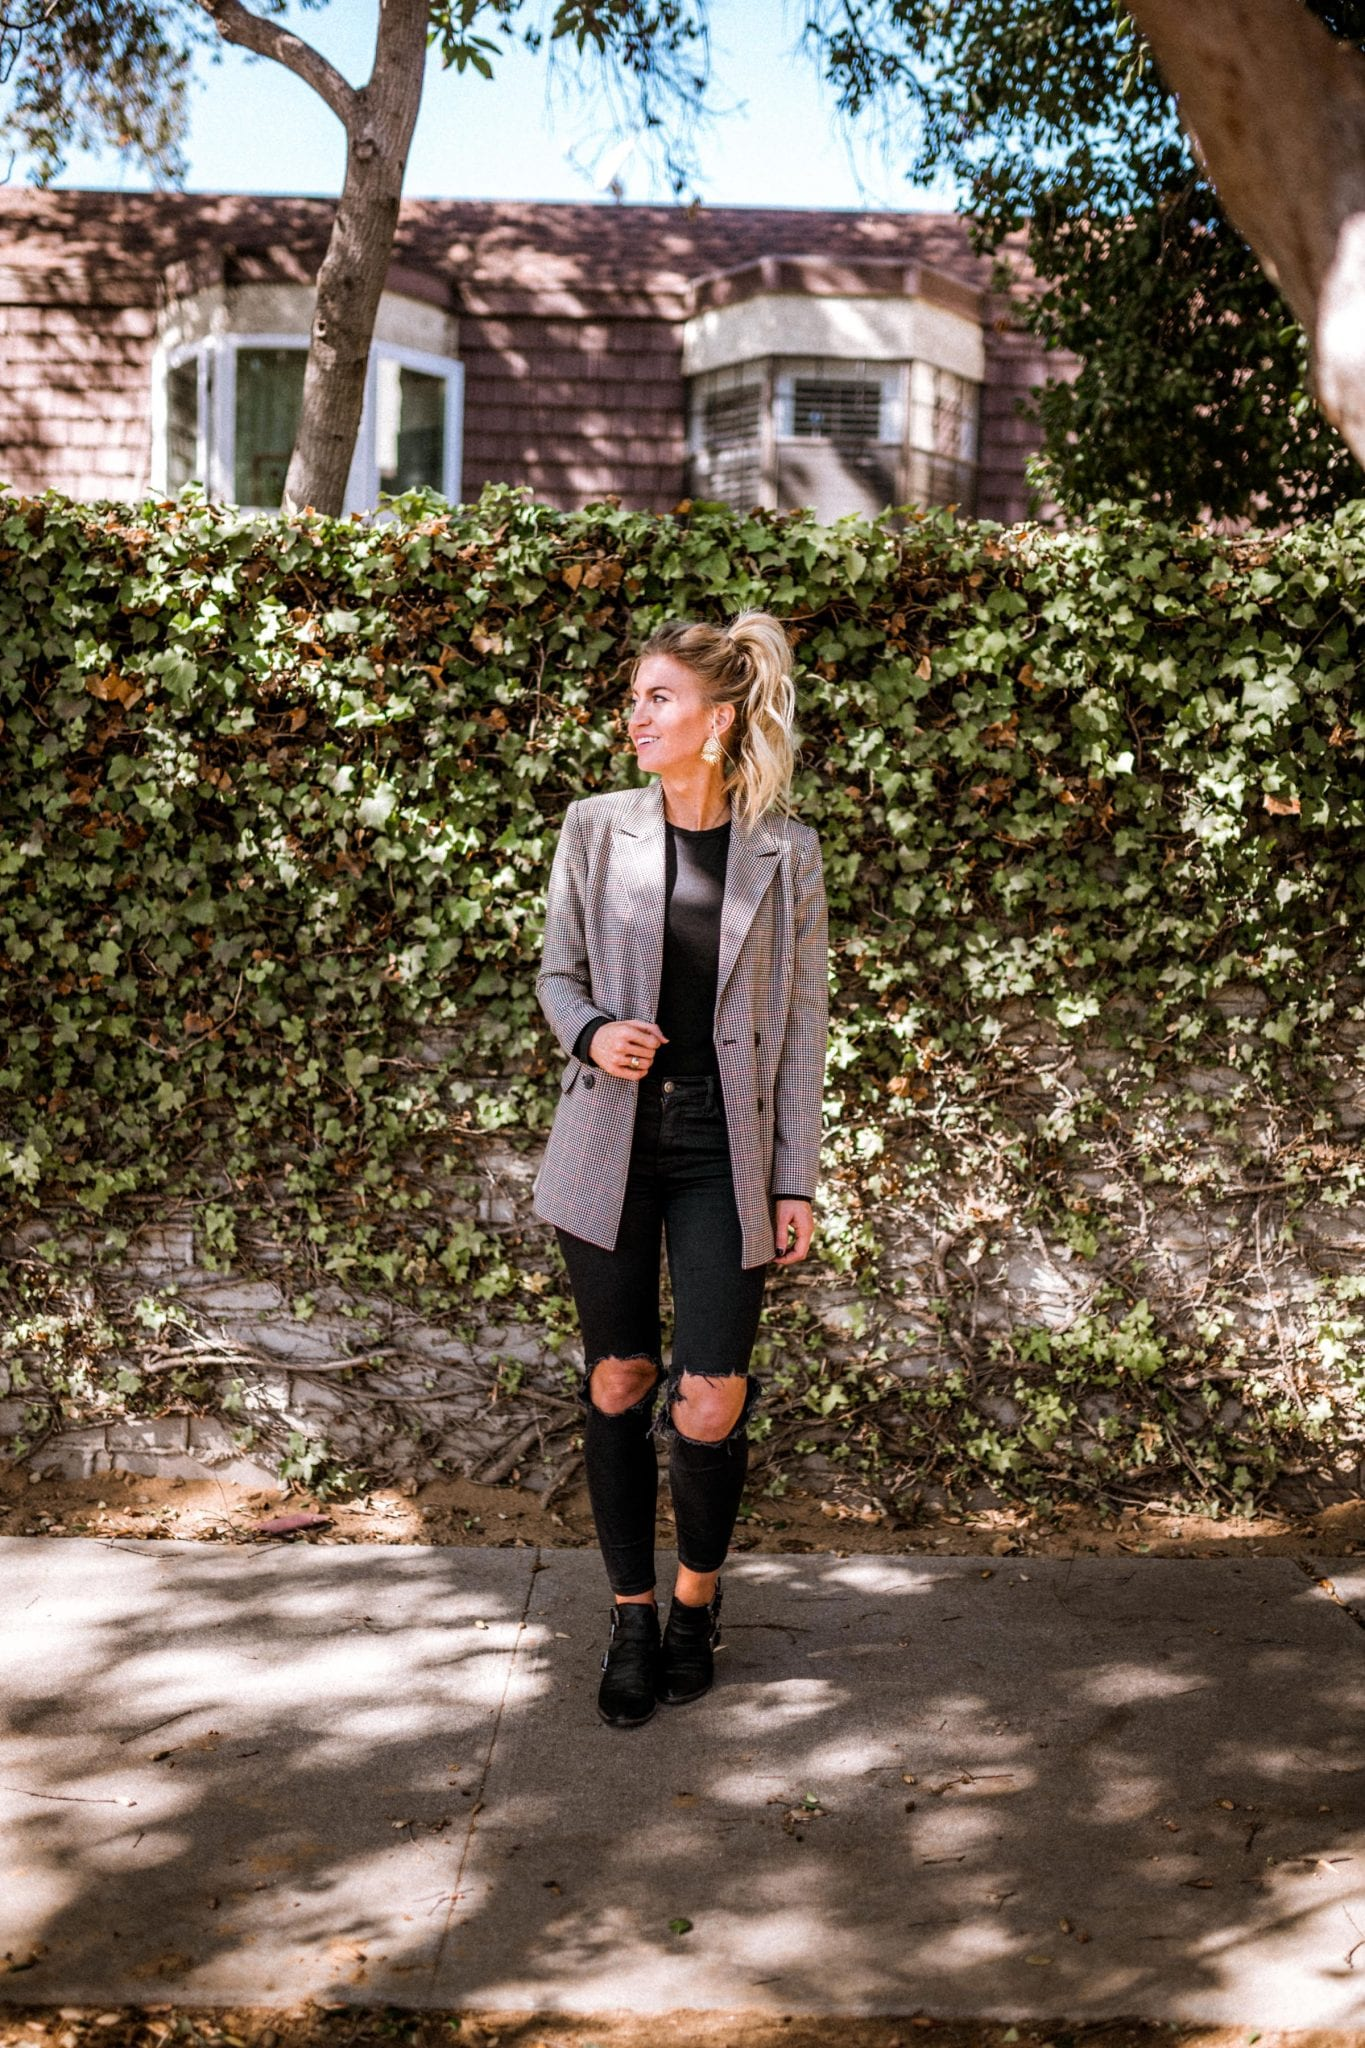 How to style a blazer 4 different ways